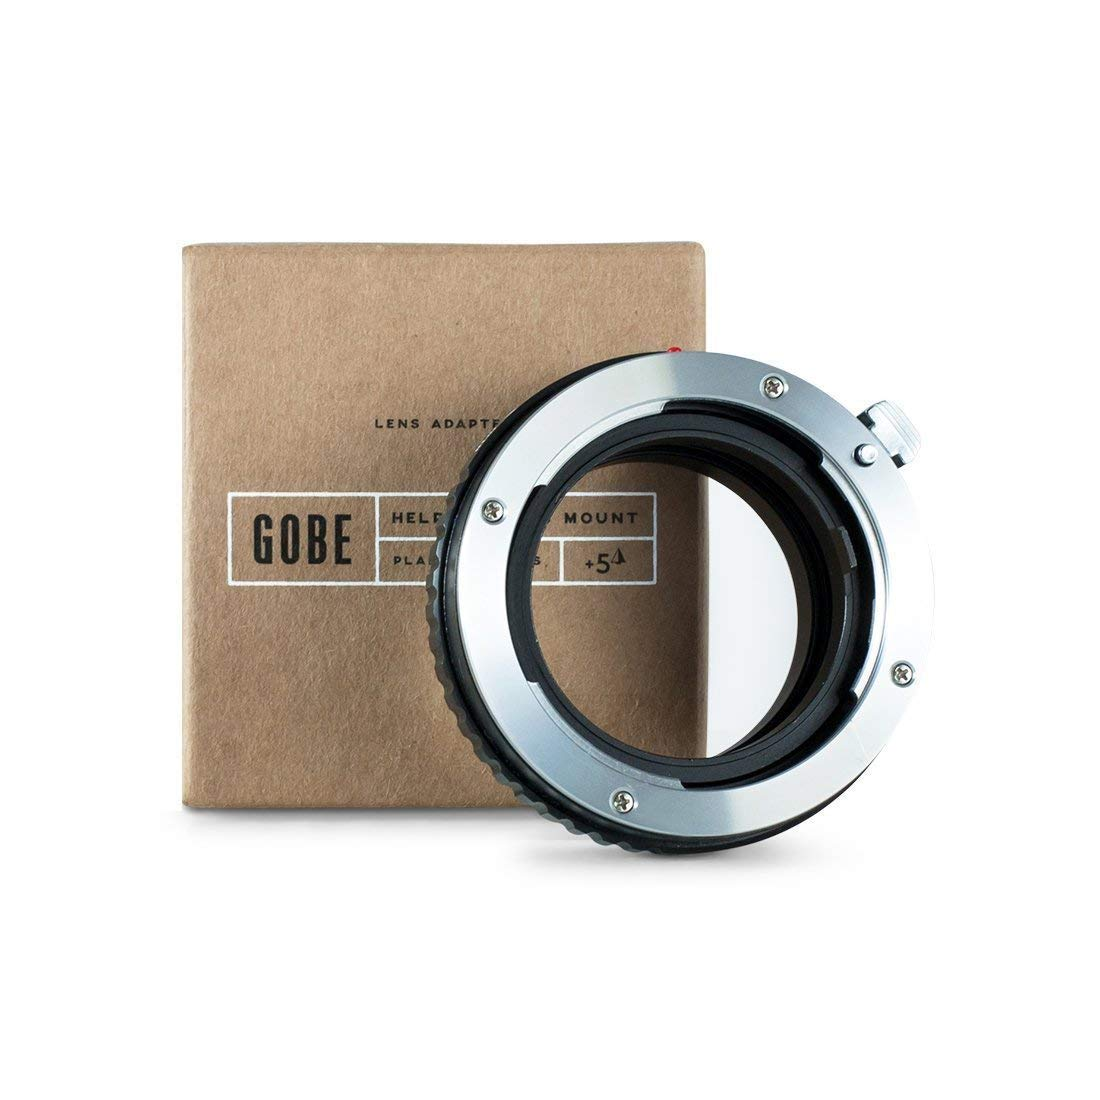 Gobe Lens Mount Adapter: Compatible with Sony A (Minolta AF) Lens and Sony E Camera Body